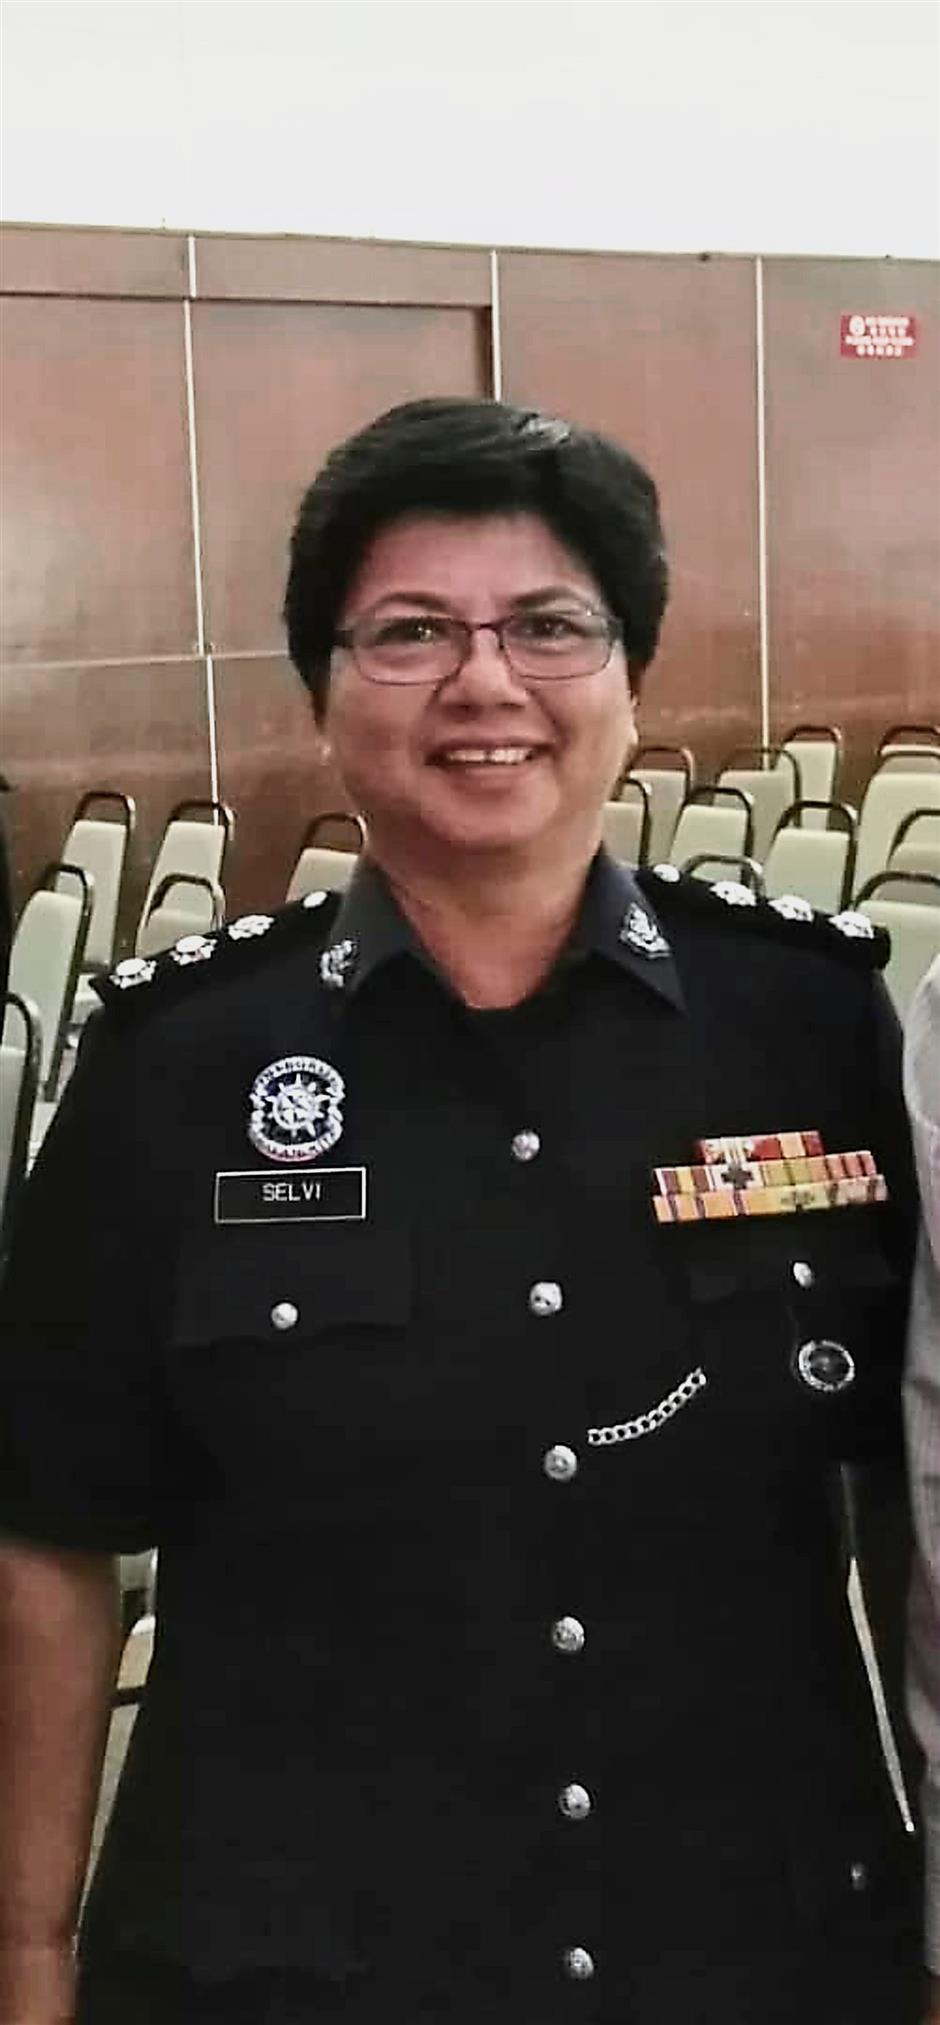 ASP Selvi Muthayah is among those receiving the PJK award.